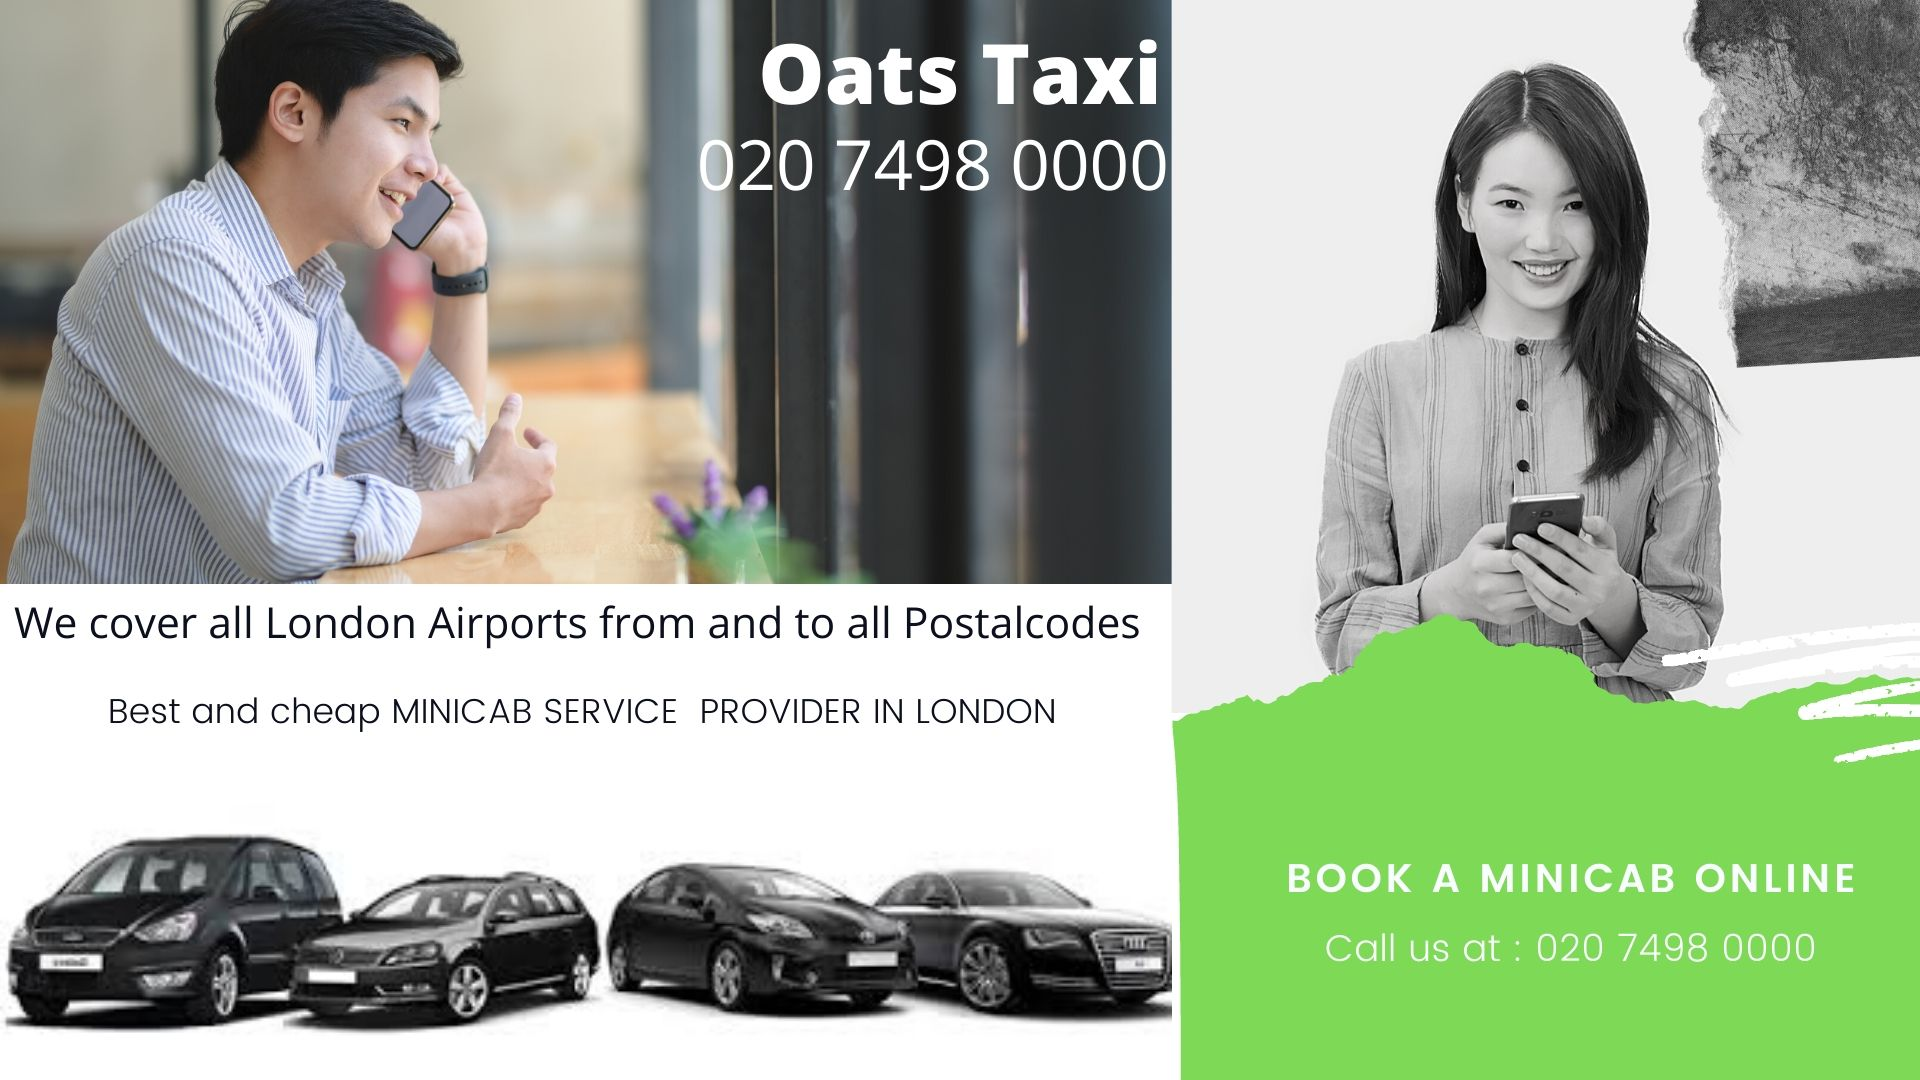 Nearest Minicab Office in Earls Court | Nearest Minicab Office in Gatwick Airport | Call now : 02074980000